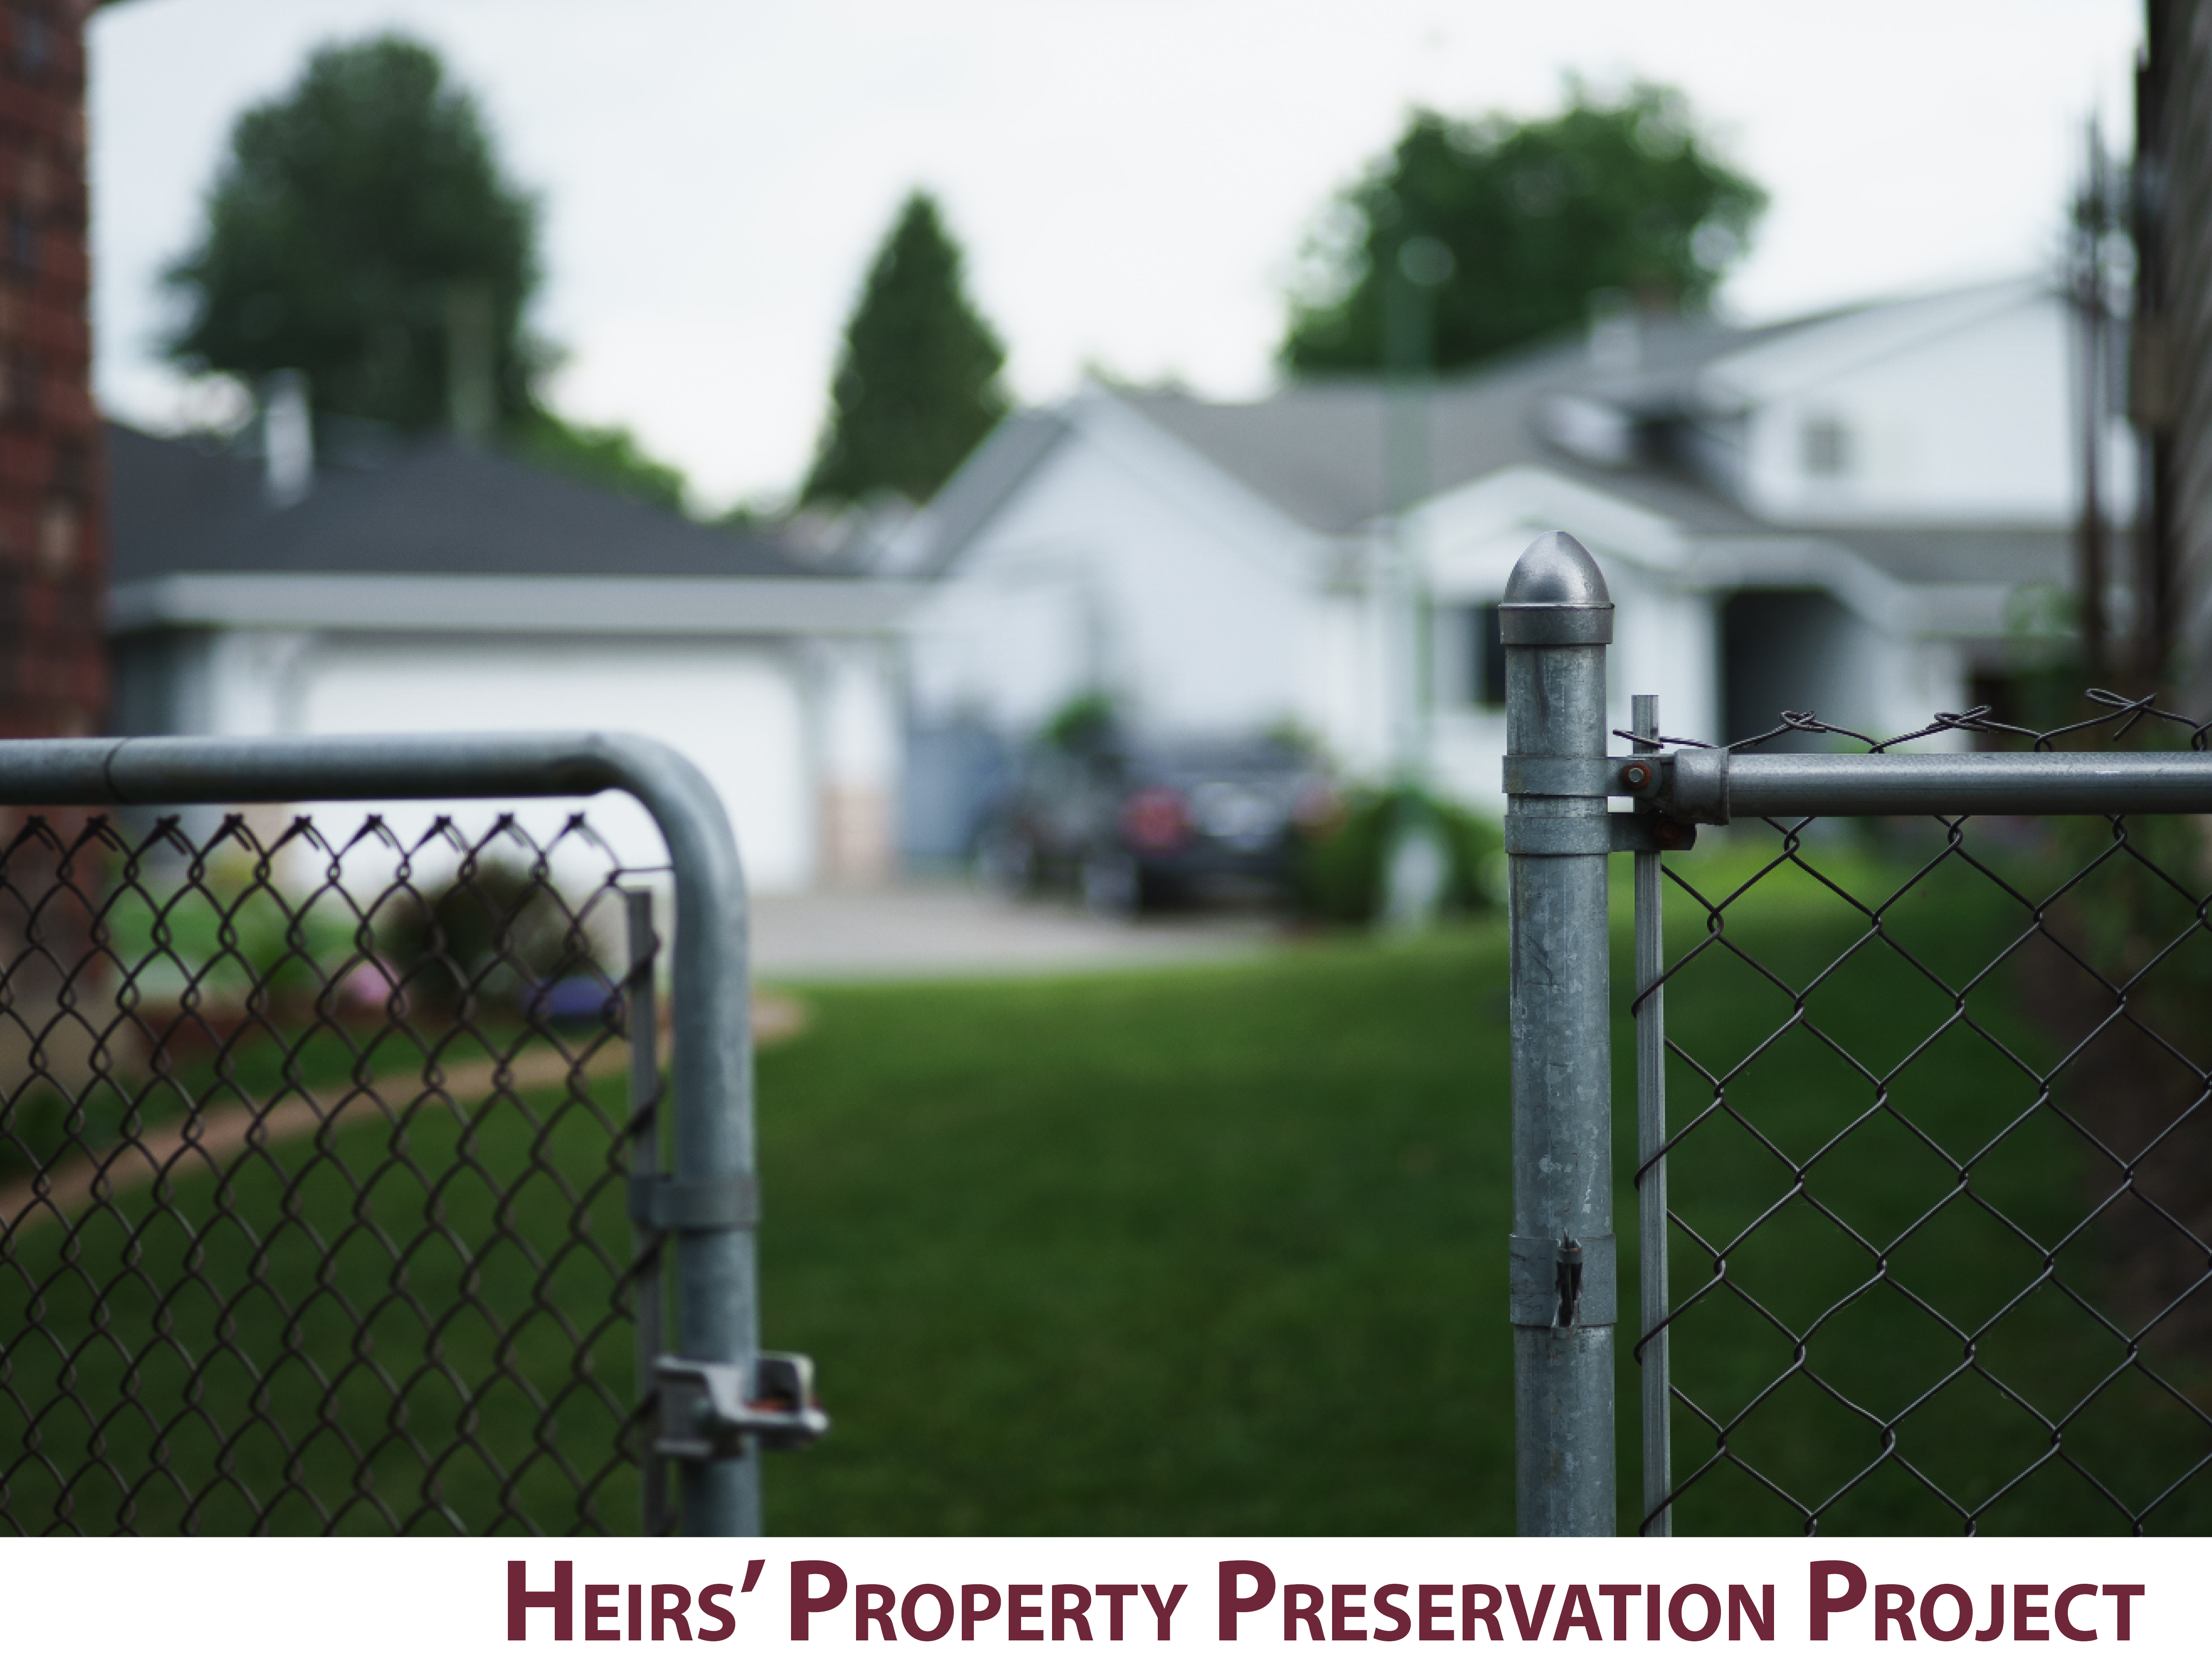 Heirs' Property Preservation Project